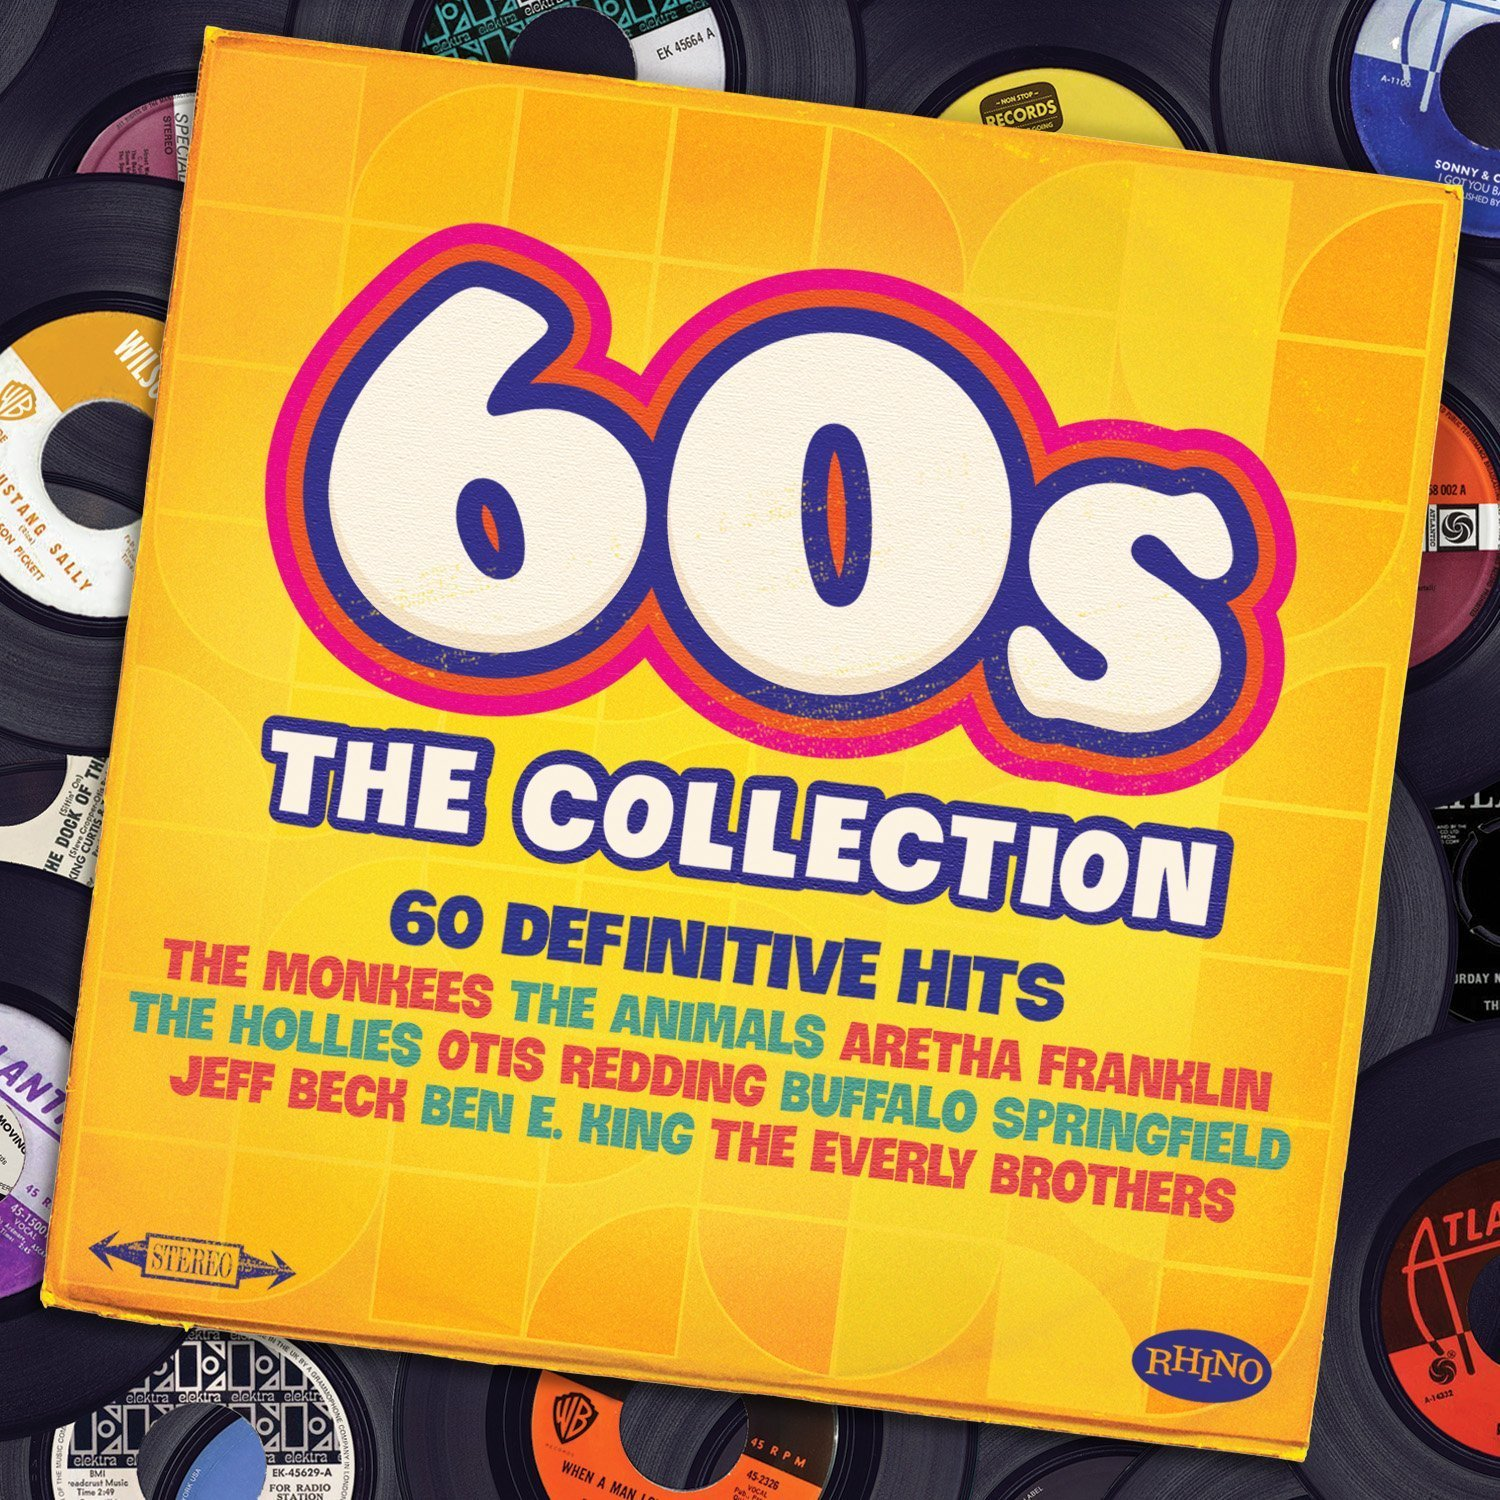 60s The Collection 3cd Musiczone Vinyl Records